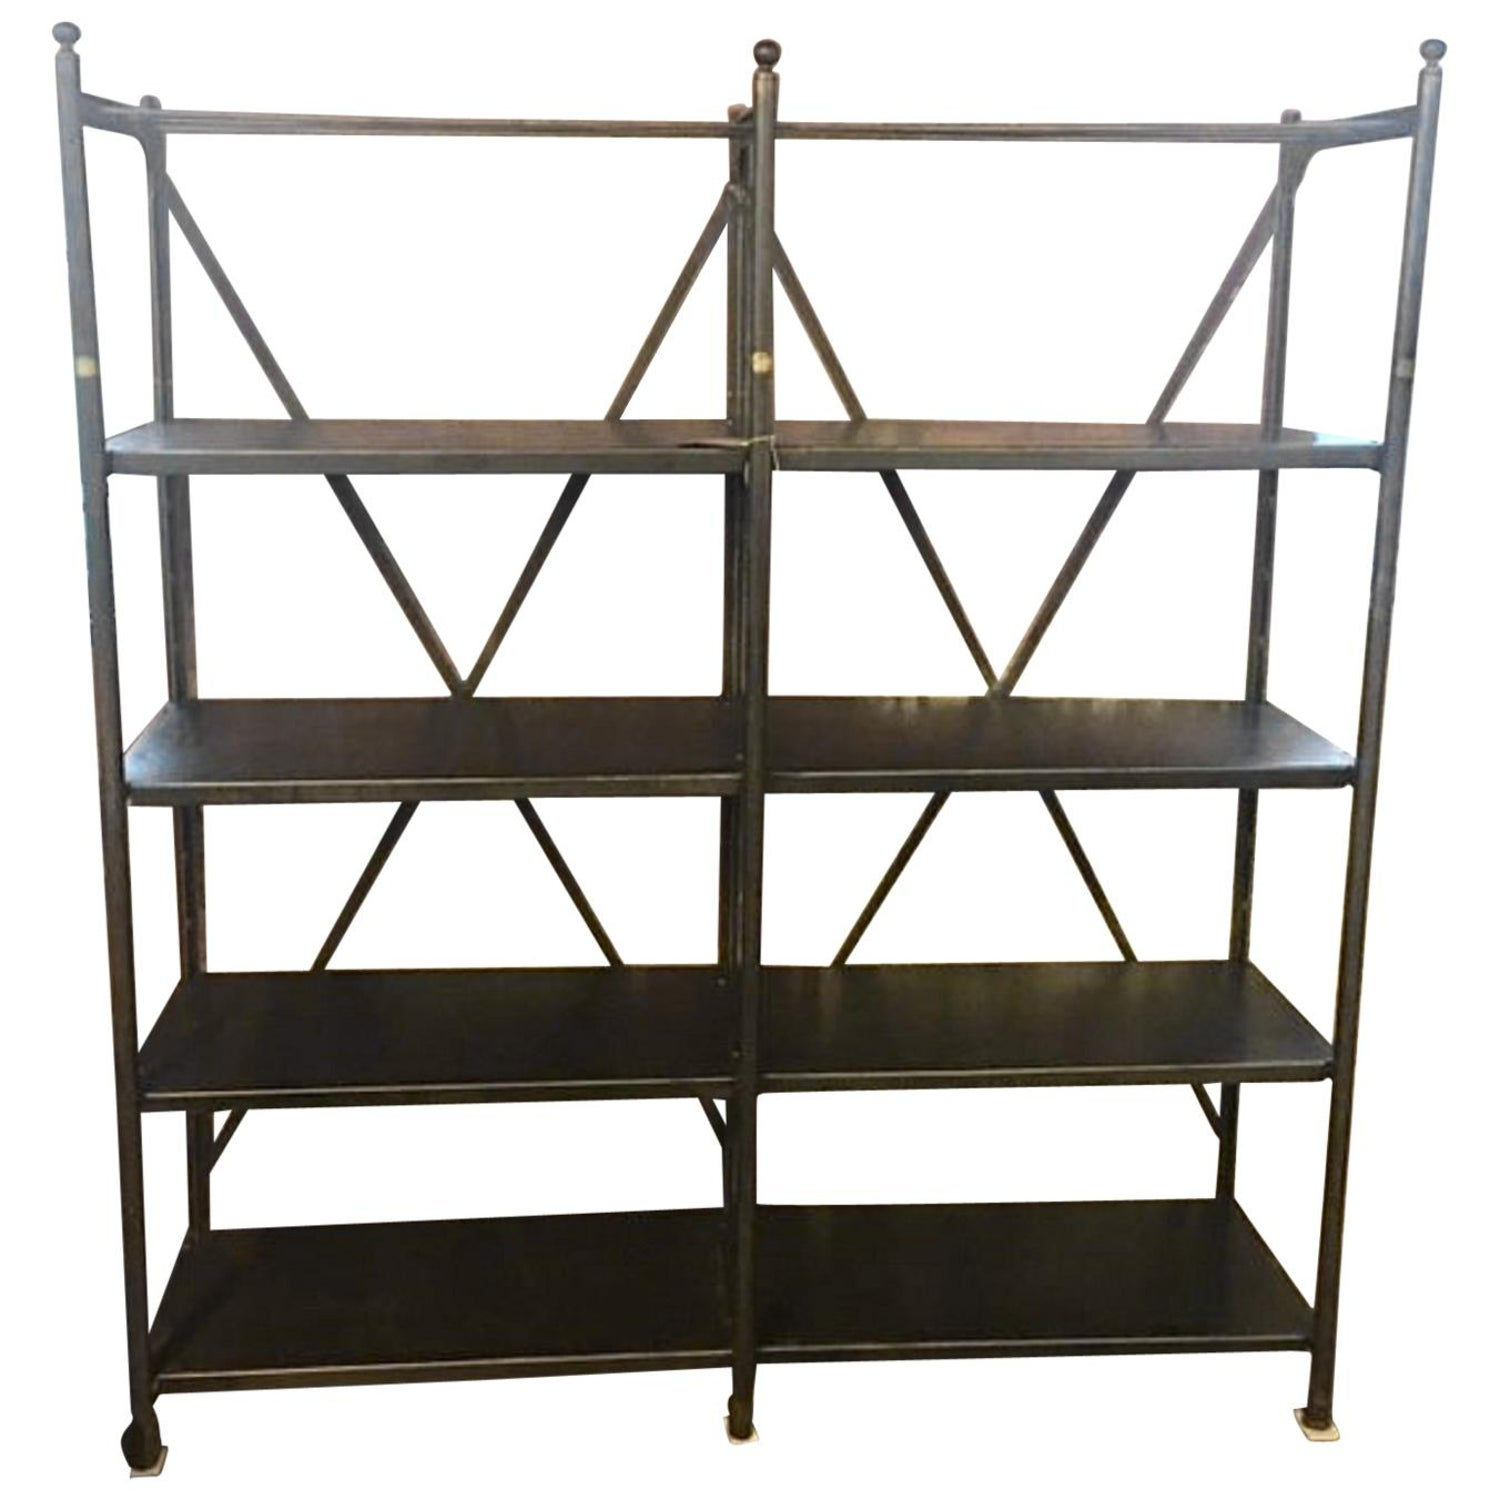 Industrial metal shelving unit by theodore scherf paris france 19th century for sale at 1stdibs